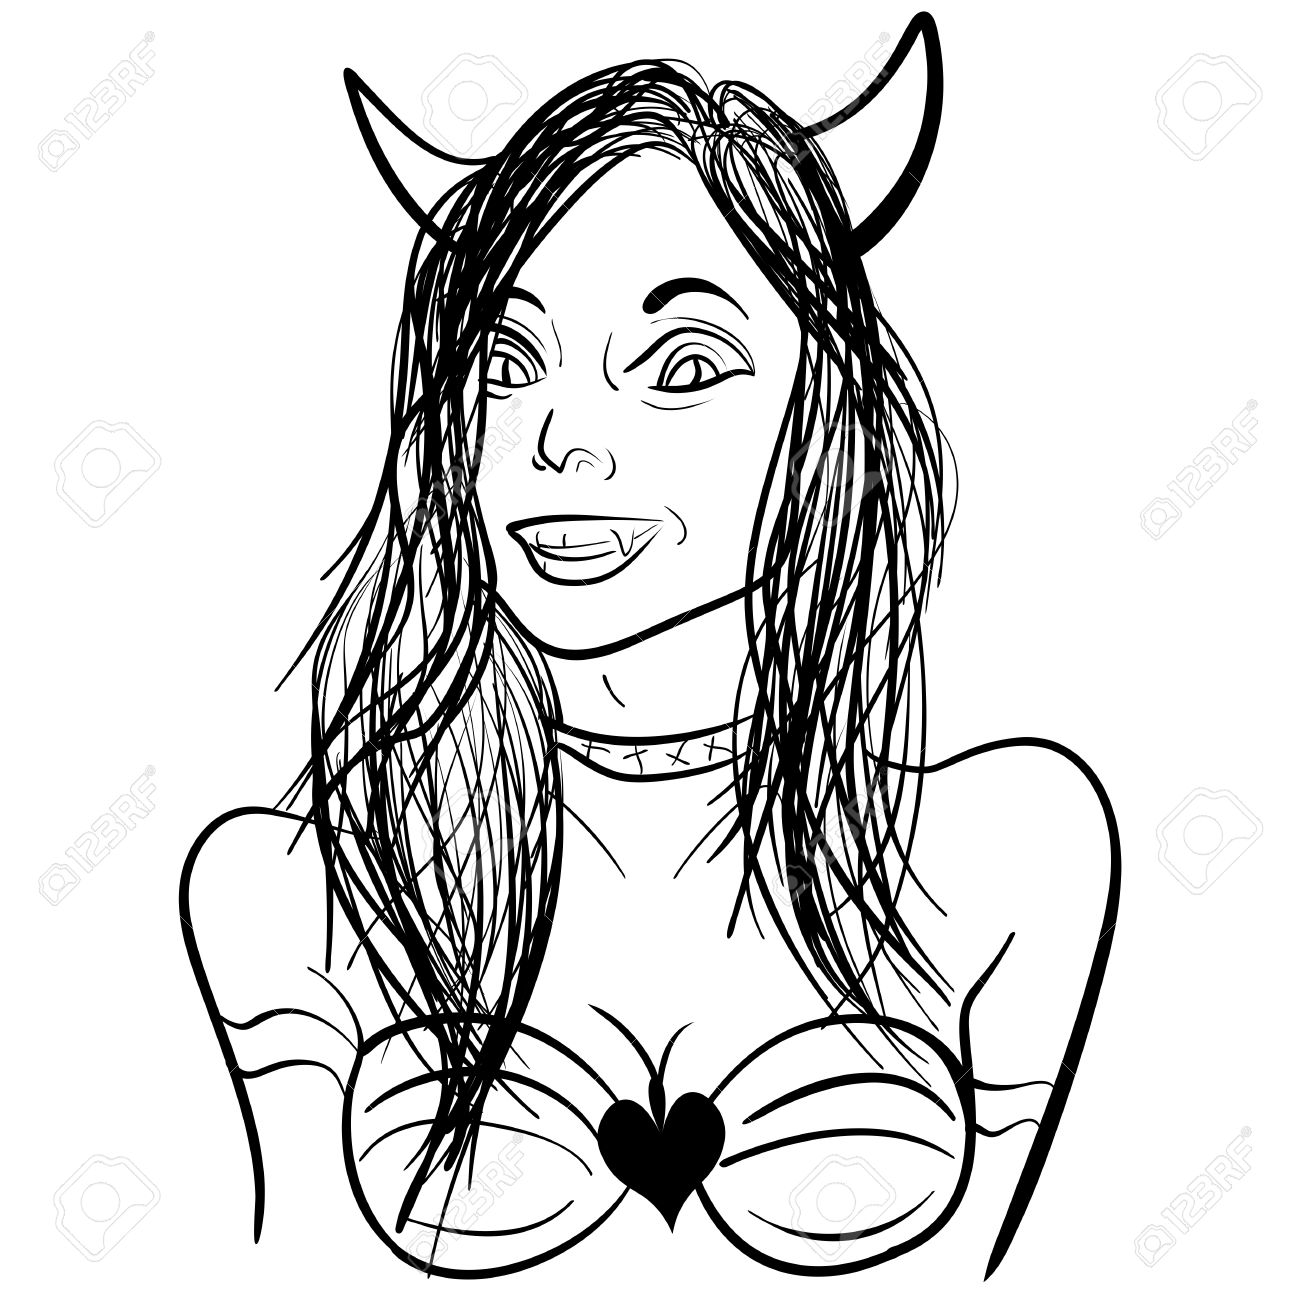 1300x1300 Cartoon Coloring Book Hand Drawn Illustration Of Pretty Demon